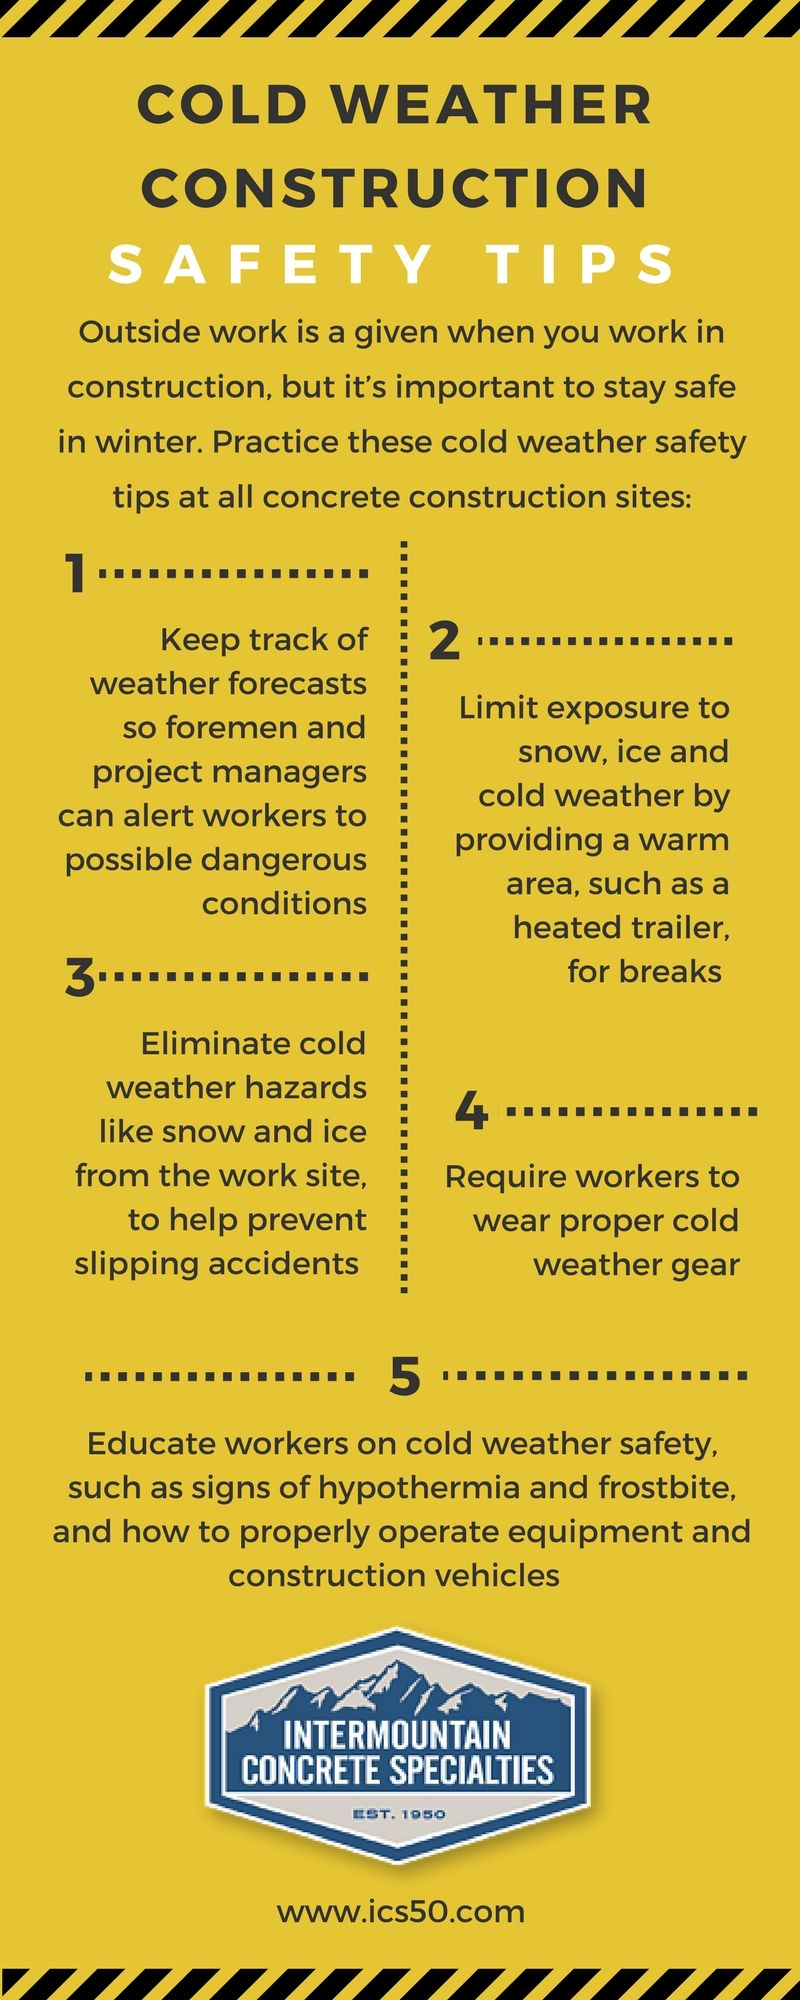 Cold weather concrete construction safety tips for outdoor